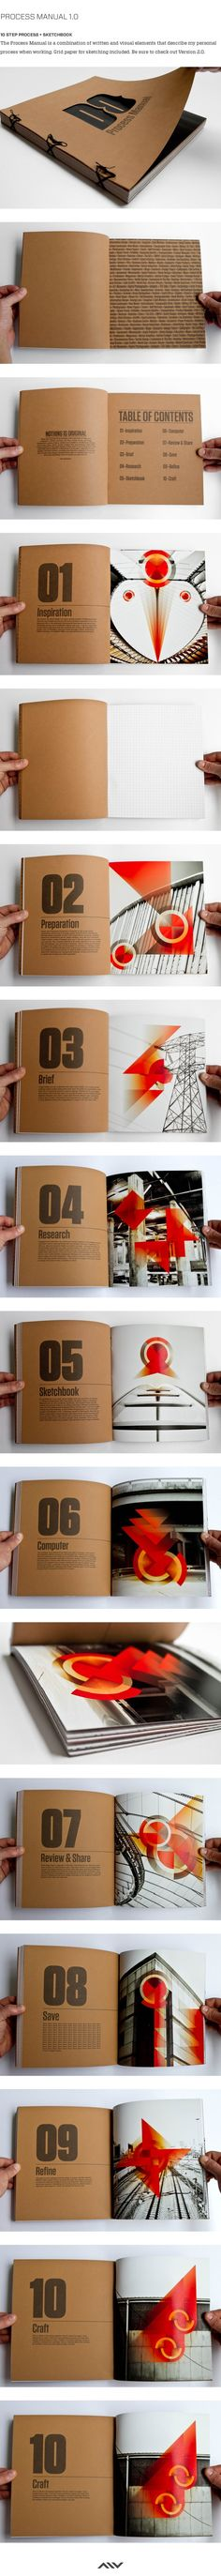 Ideas For Design Editorial Book Portfolio Layout Layout Design, Graphisches Design, Buch Design, Print Layout, Graphic Design Layouts, Graphic Design Inspiration, Graphic Designers, Design Ideas, Layout Inspiration